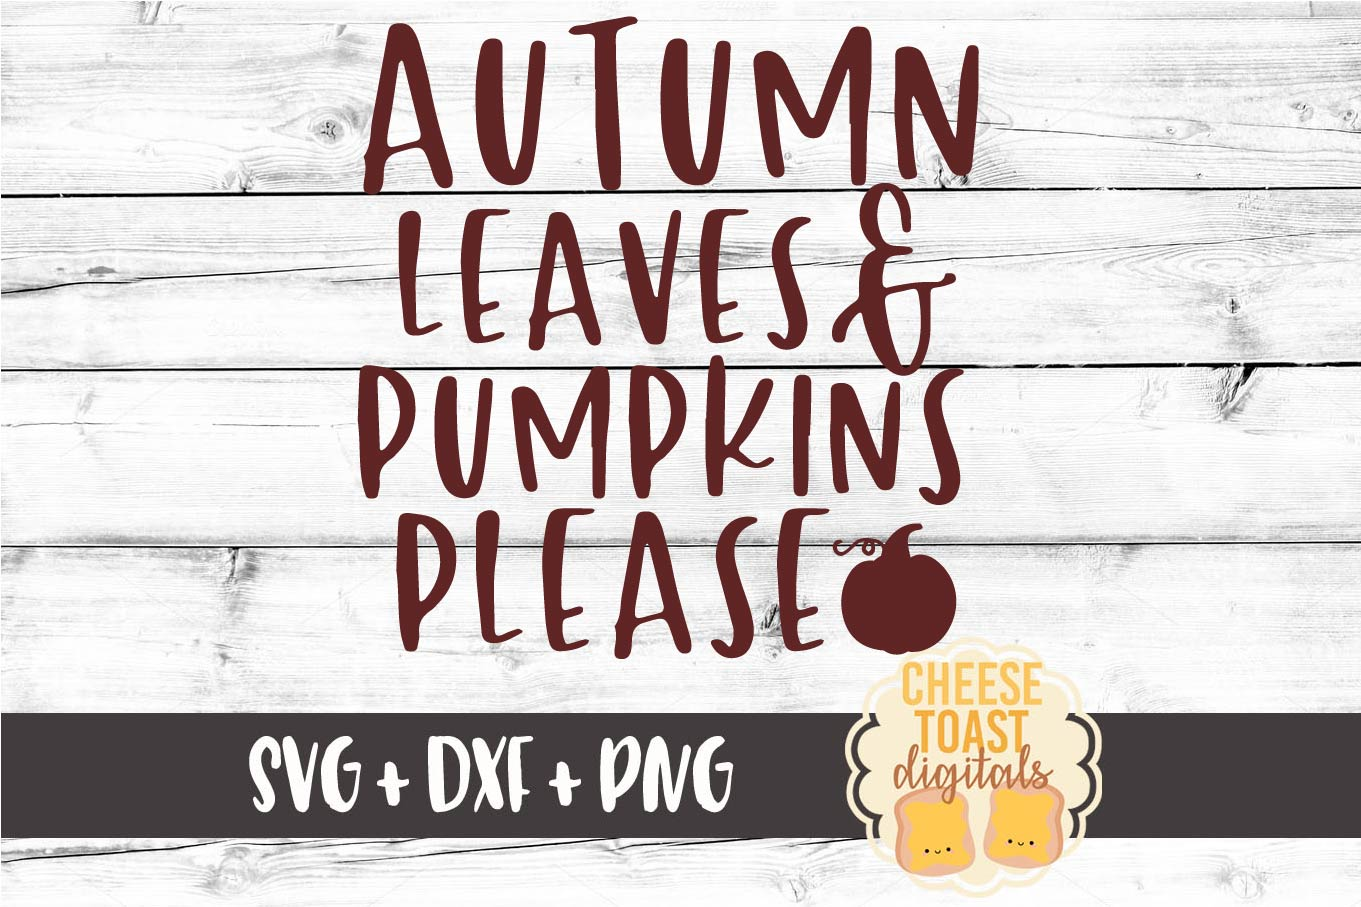 Autumn Leaves and Pumpkins Please - Fall SVG File example image 2